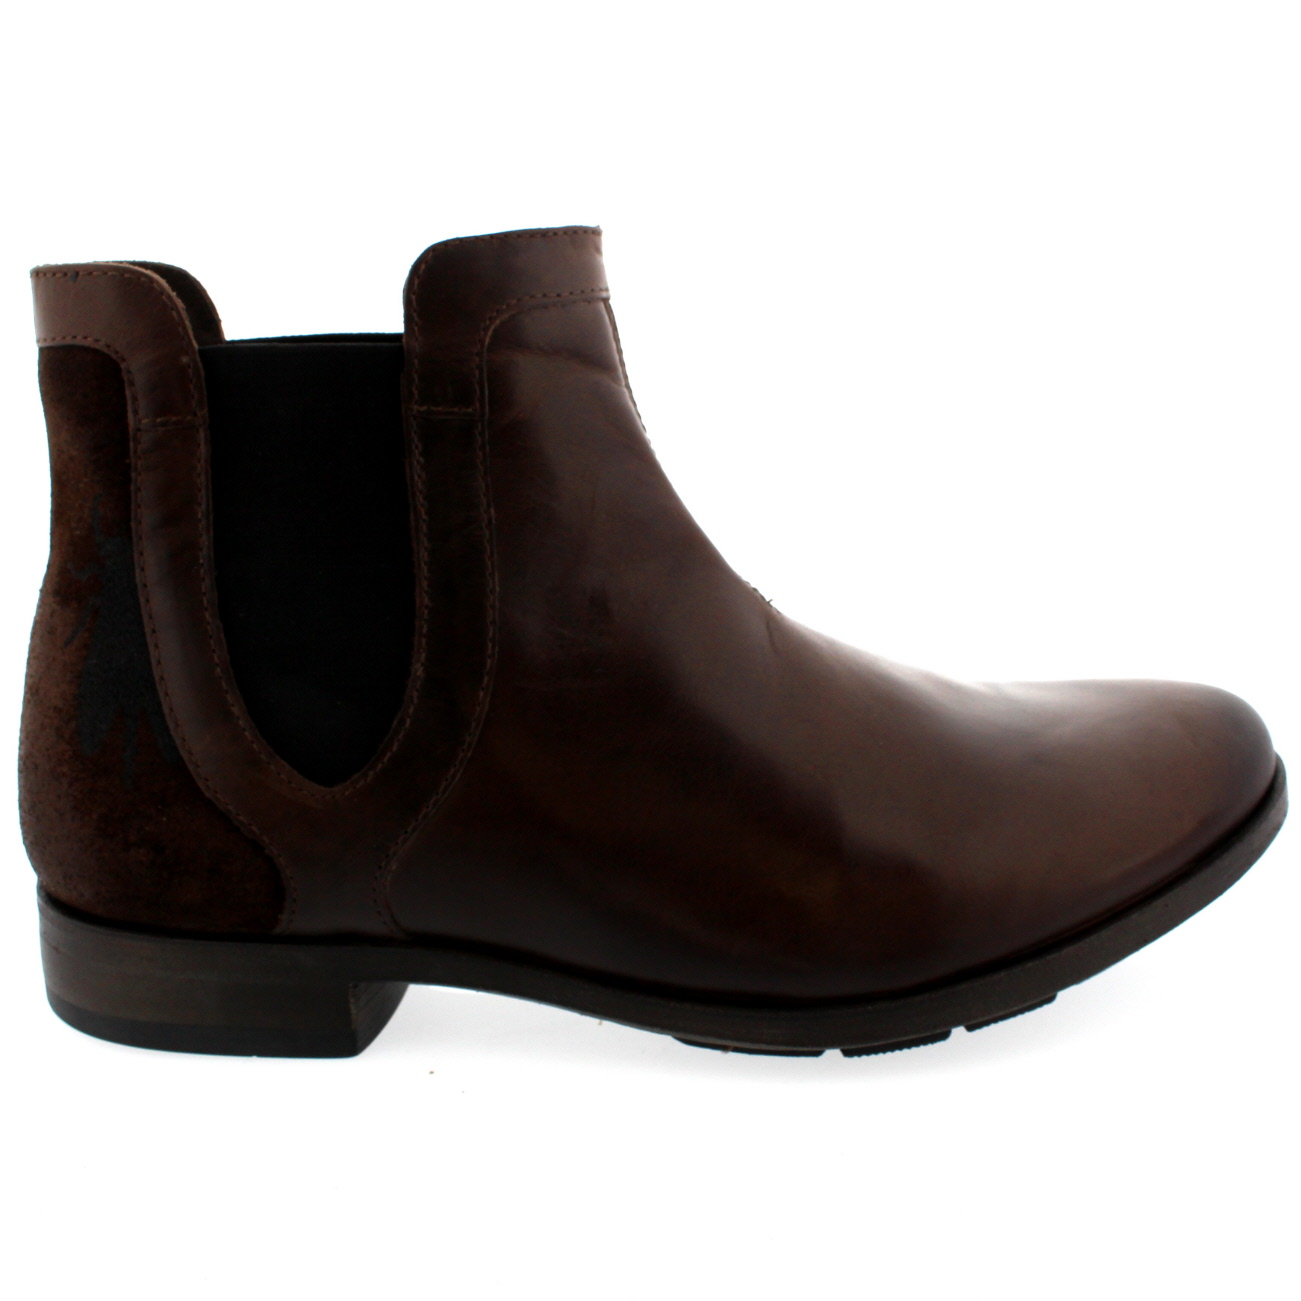 Shop for women's ankle boots at kejal-2191.tk Next day delivery and free returns available. s of products online. Buy ankle boots for women now! Tan Forever Comfort Block Heel Chelsea Boots. £ Black Forever Comfort Block Heel Chelsea Boots. £ Brown Ankle Zip Boots. £ Black Piping Detail Chelsea Boots. £